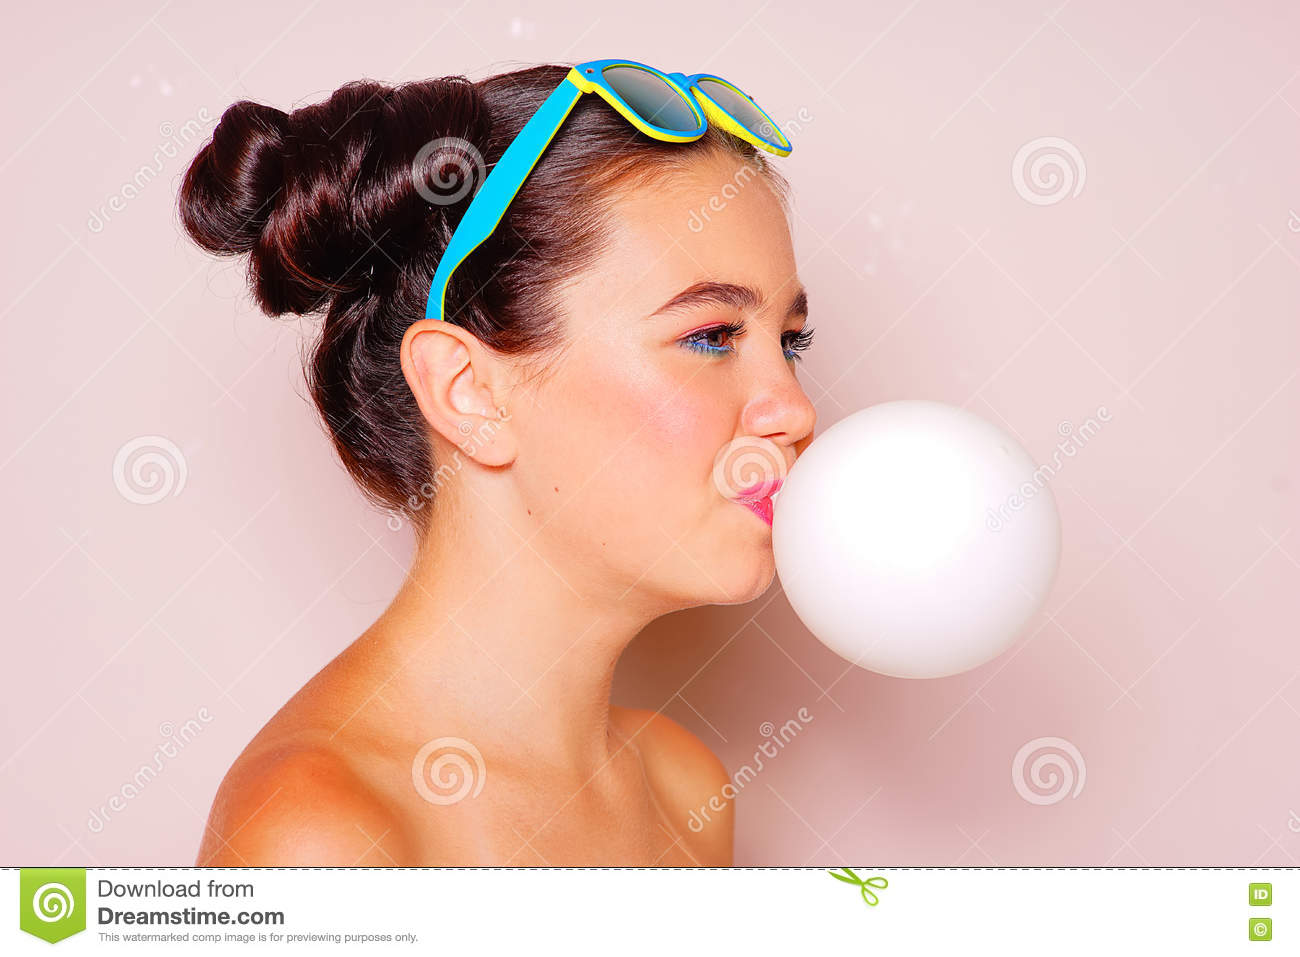 Recommend bubble gum blowing teen girls question think